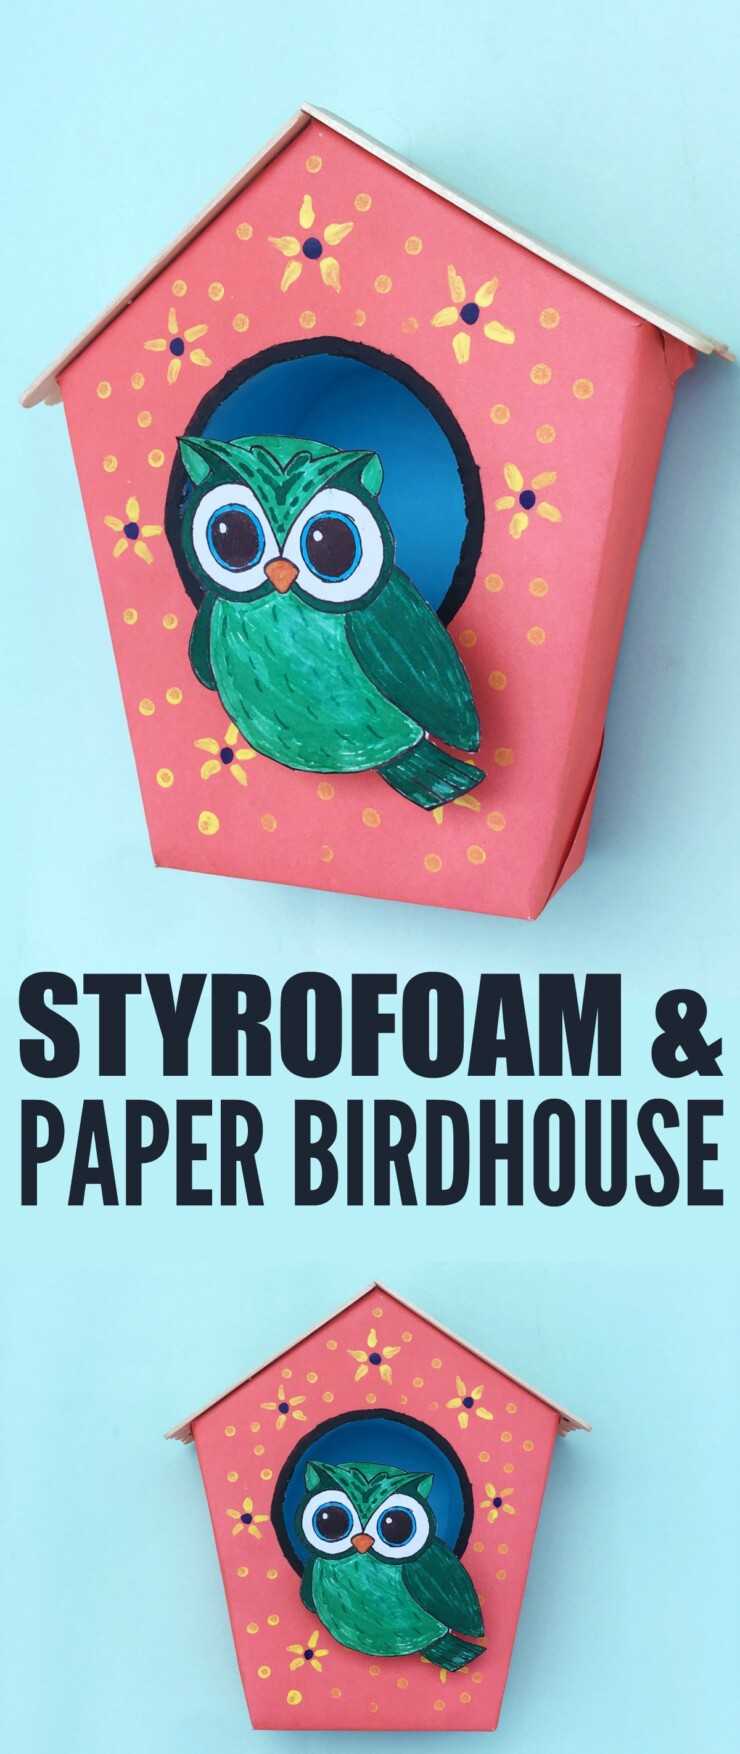 This fun kids craft sets your kids to repurpose old styrofoam to create an adorable Styrofoam And Paper Birdhouse. It's a cute paper craft for kids that all ages can enjoy. A perfect piece to decorate the outiside of a cardboard box home!